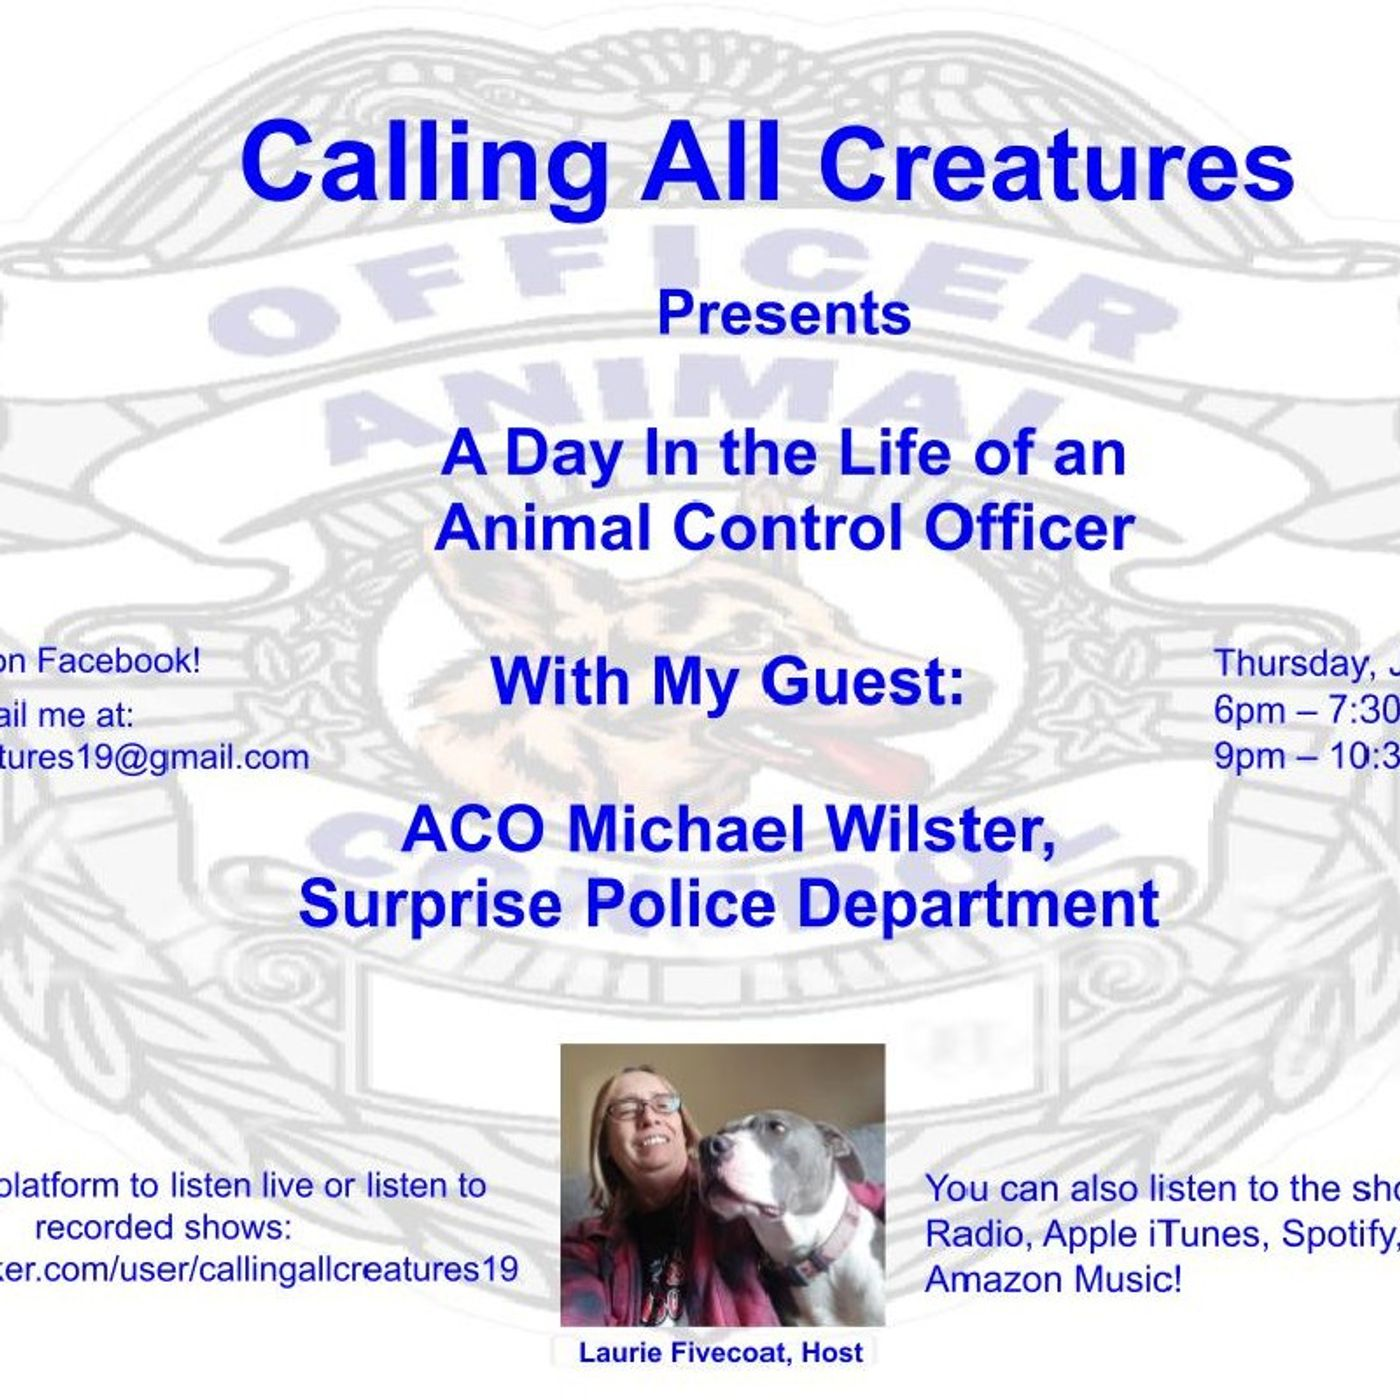 Calling All Creatures Presents A Day in the Life of an Animal Control Officer